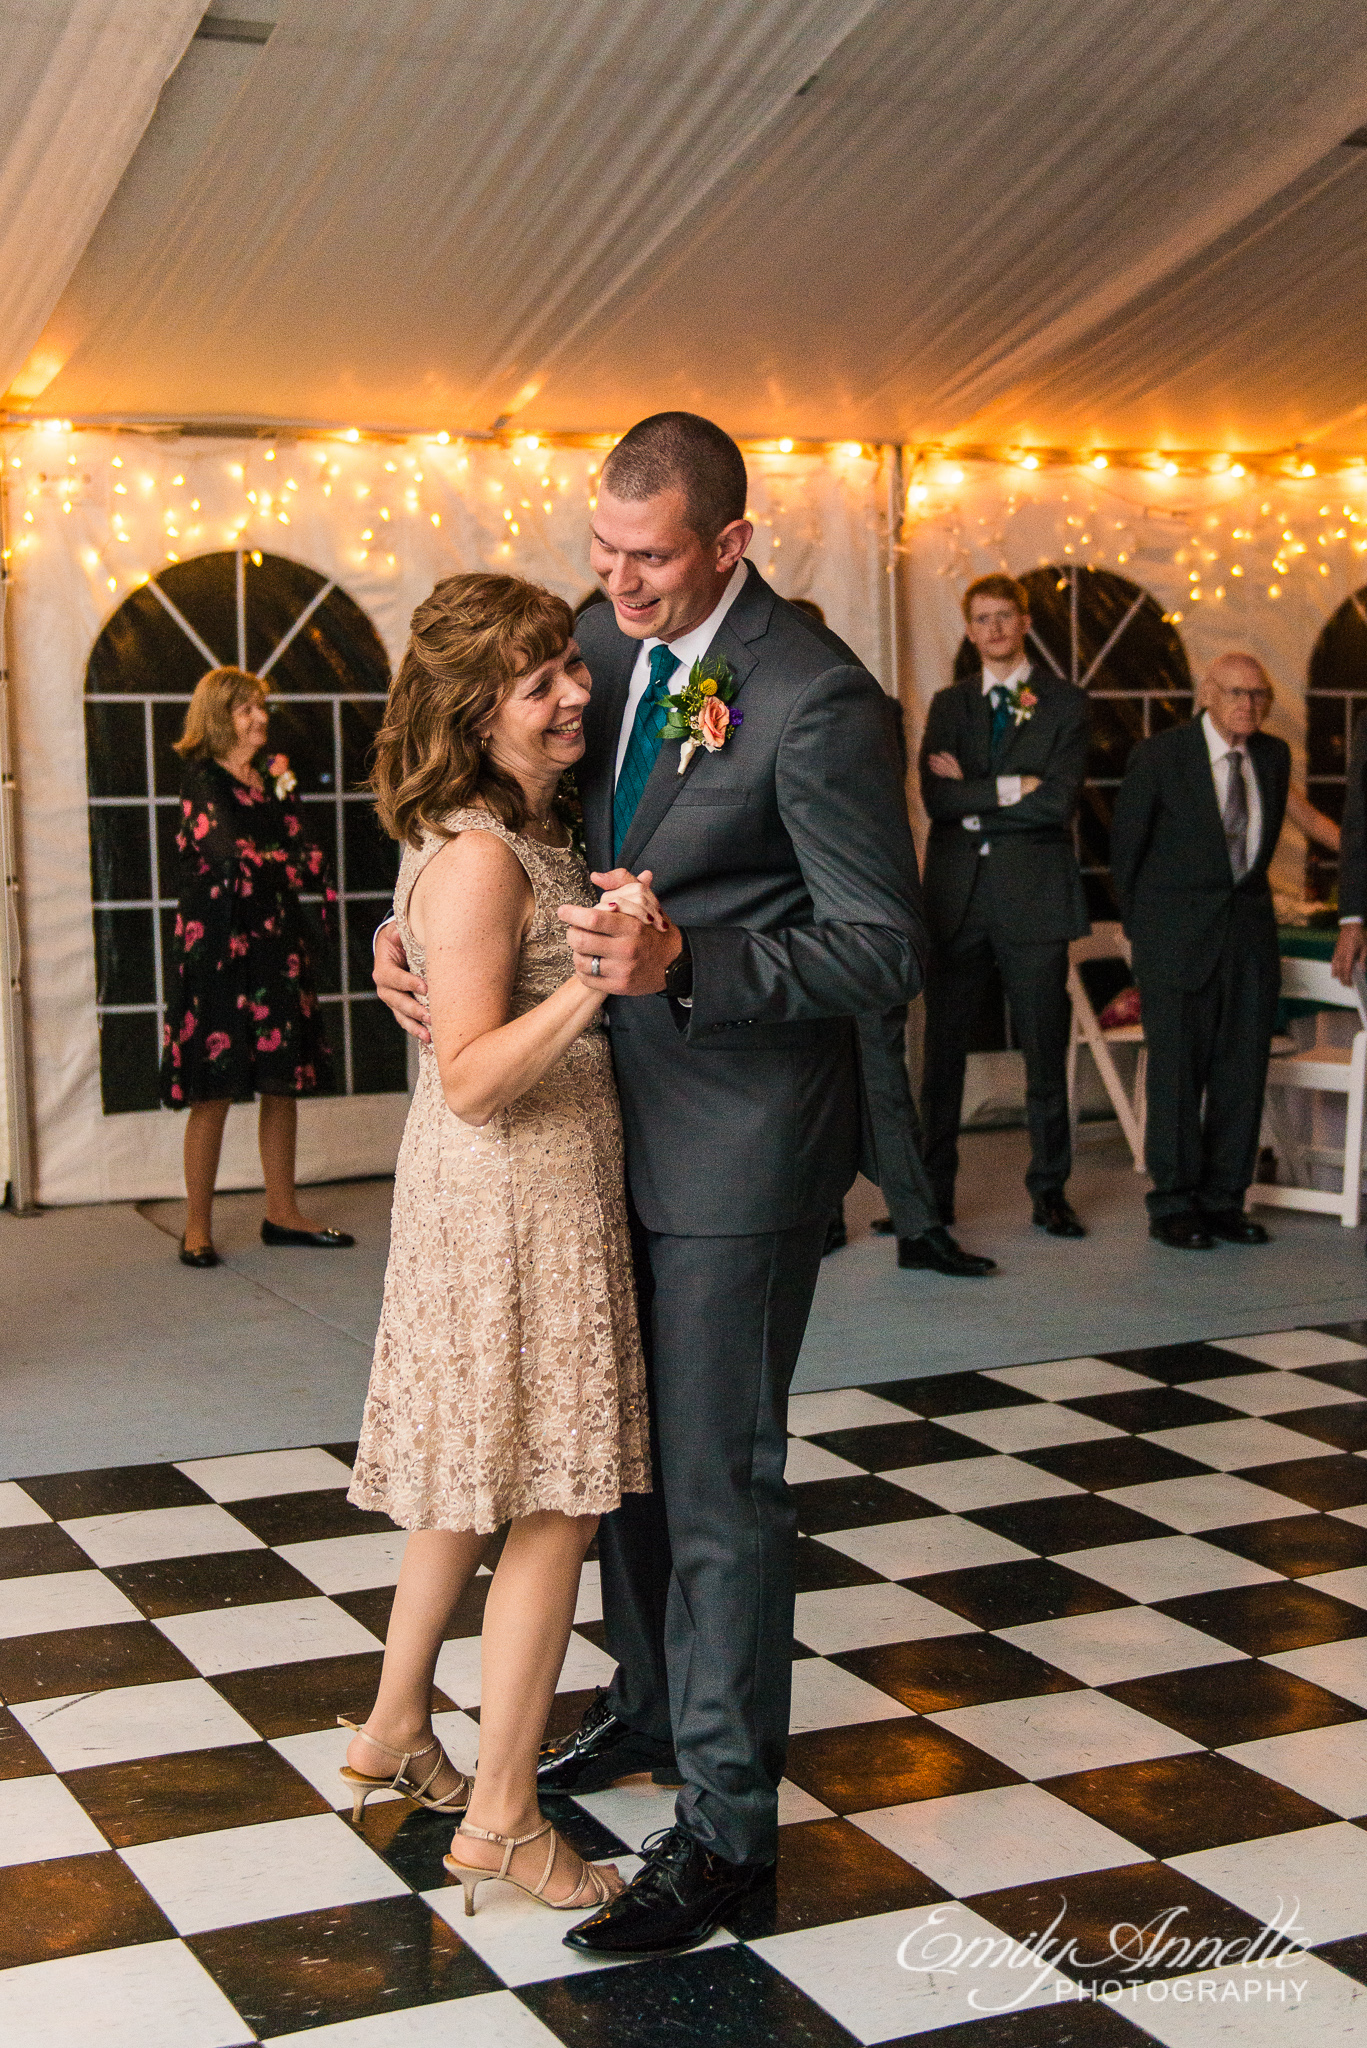 A groom and the mother of the groom share their mother son dance with smiles during a country wedding reception at Amber Grove near Richmond, Virginia